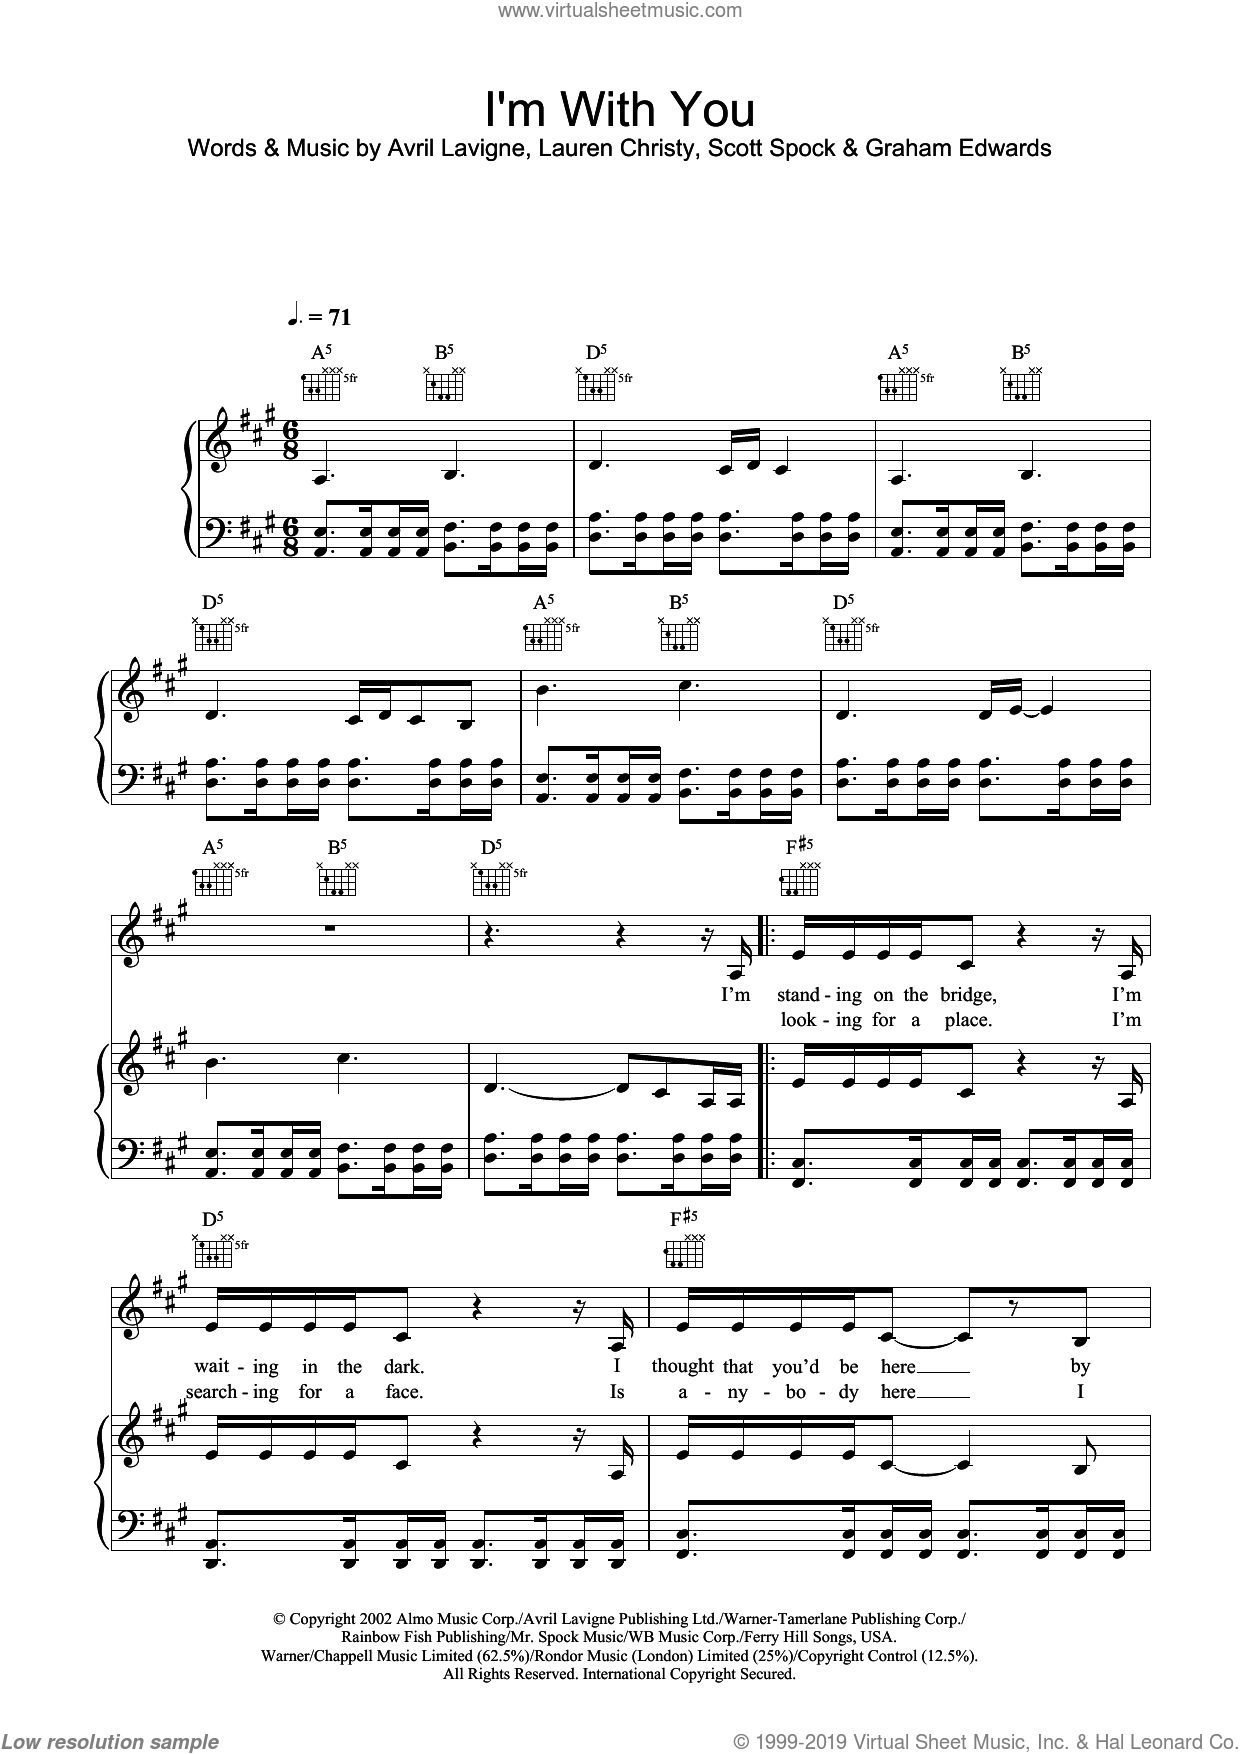 I'm With You sheet music for voice, piano or guitar by Avril Lavigne, Graham Edwards, Lauren Christy and Scott Spock, intermediate skill level